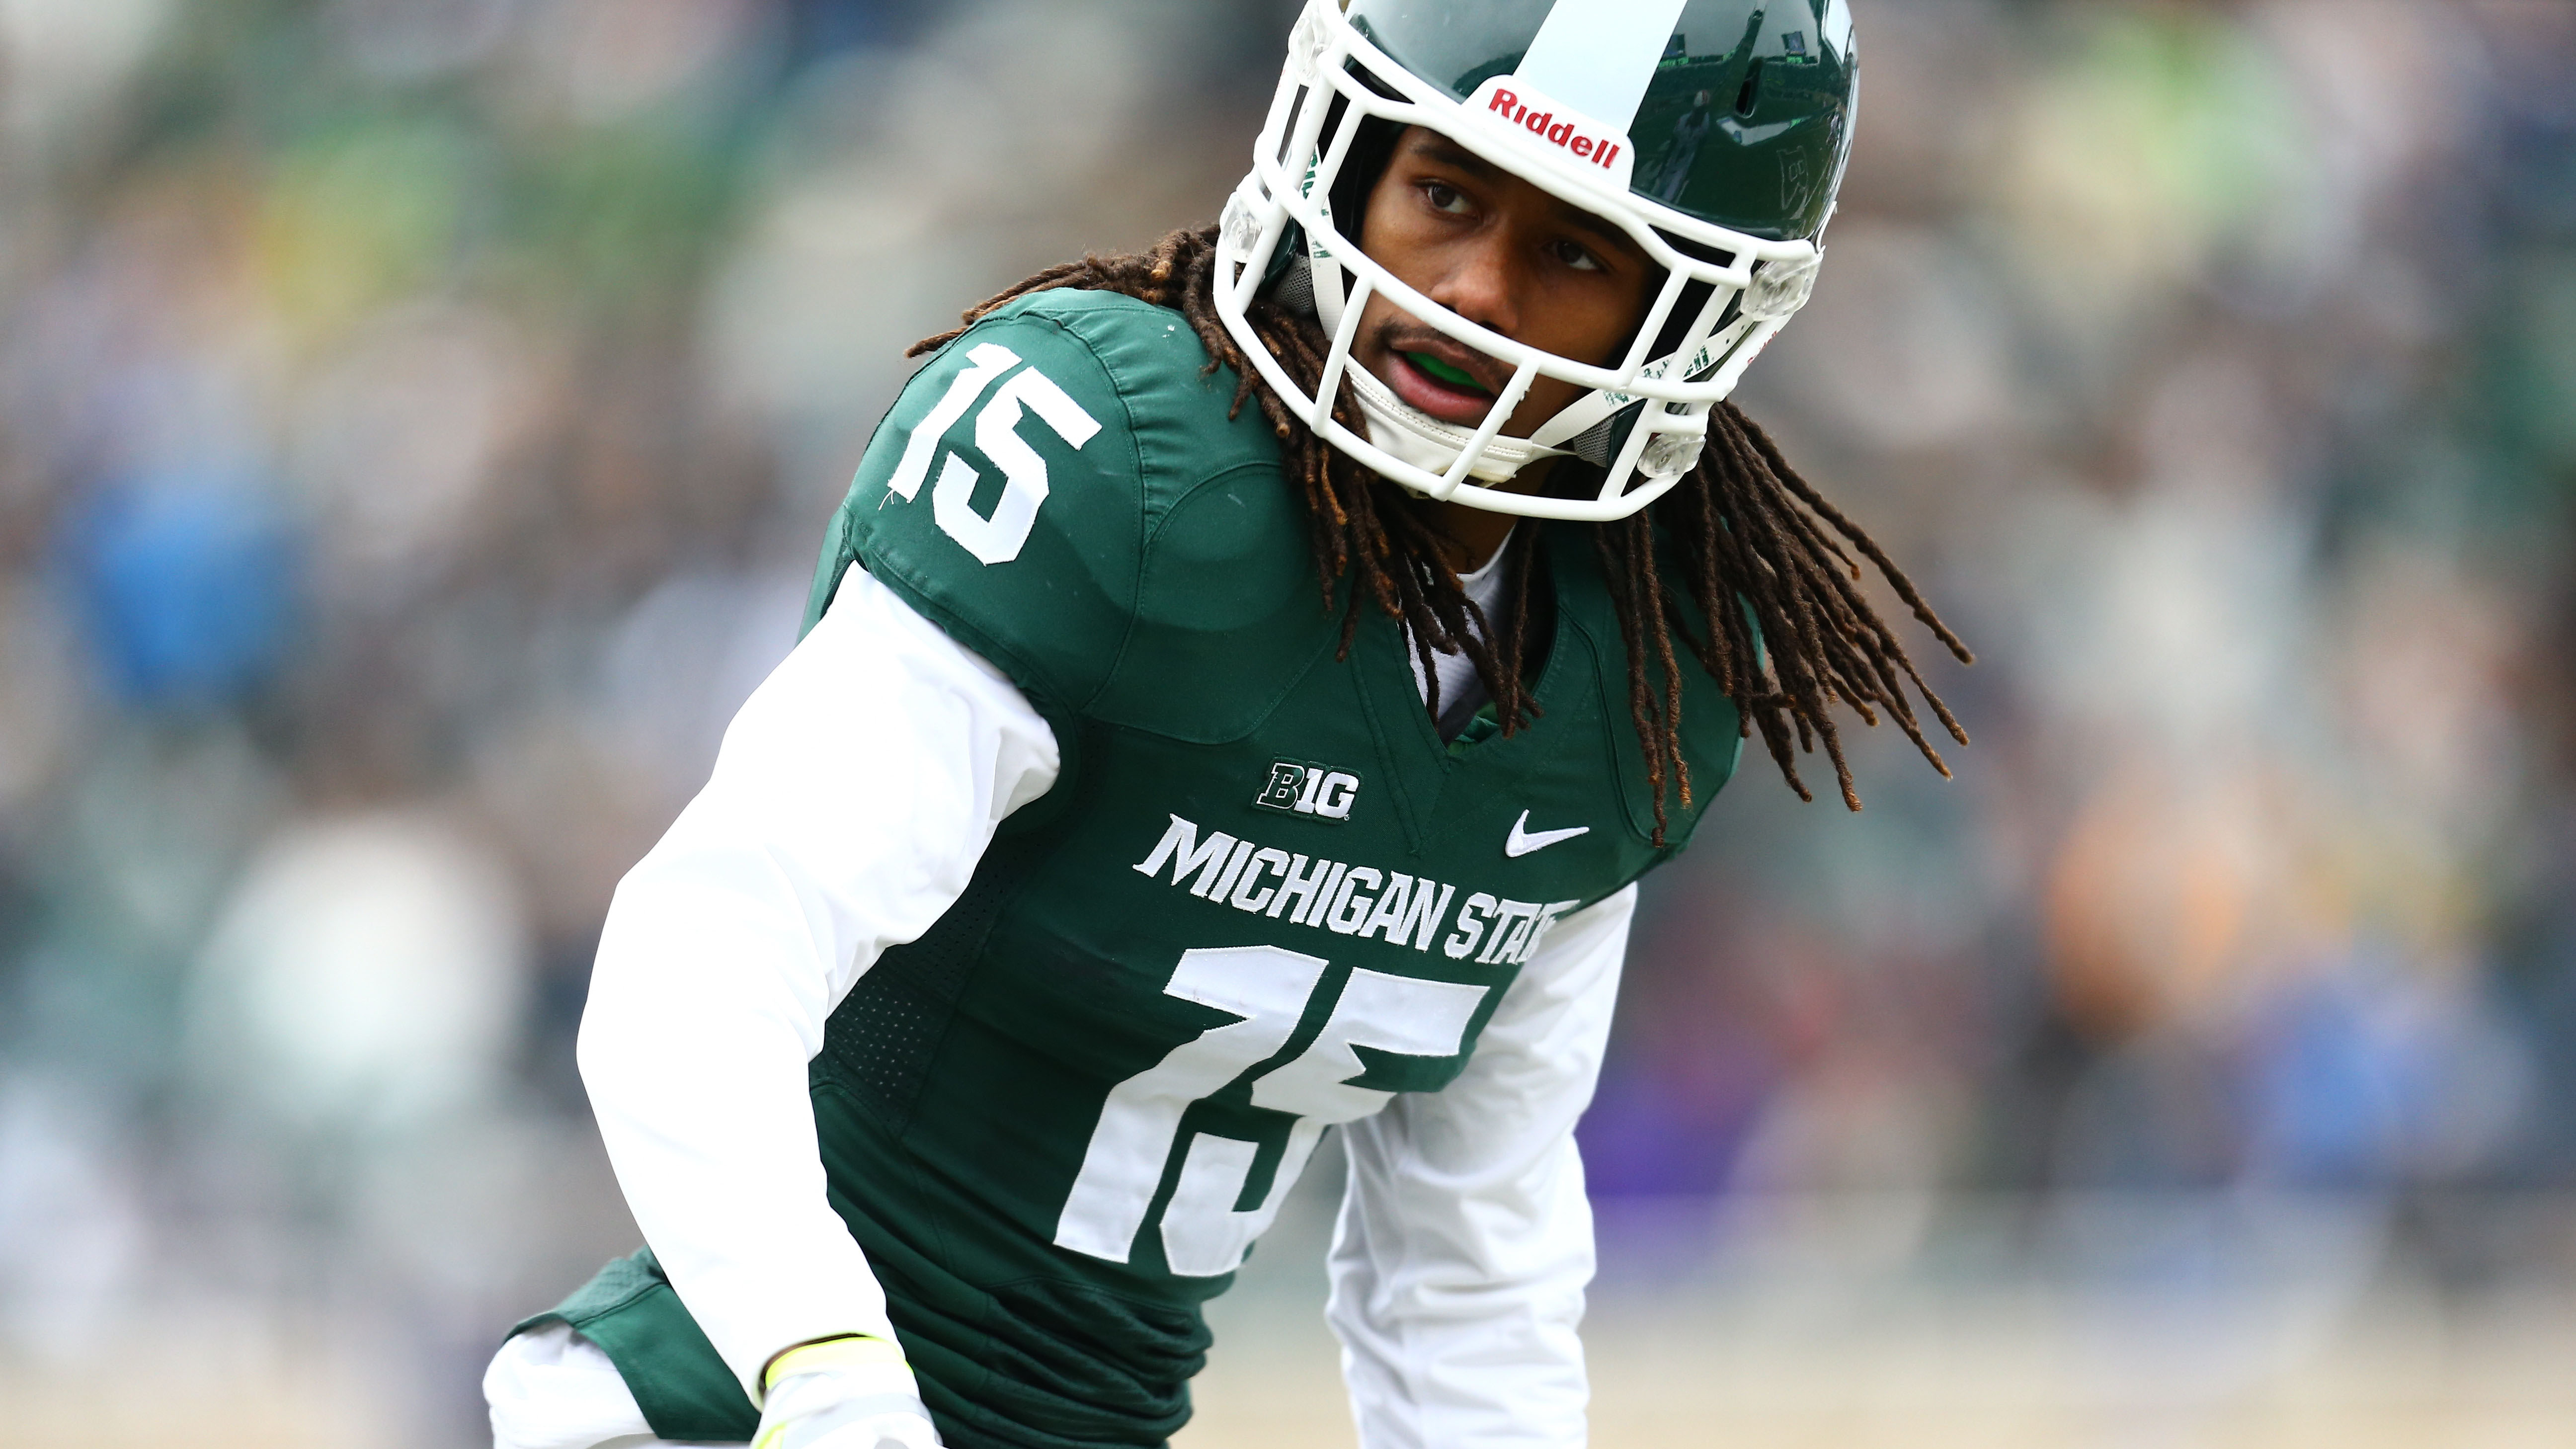 Trae Waynes Michigan State